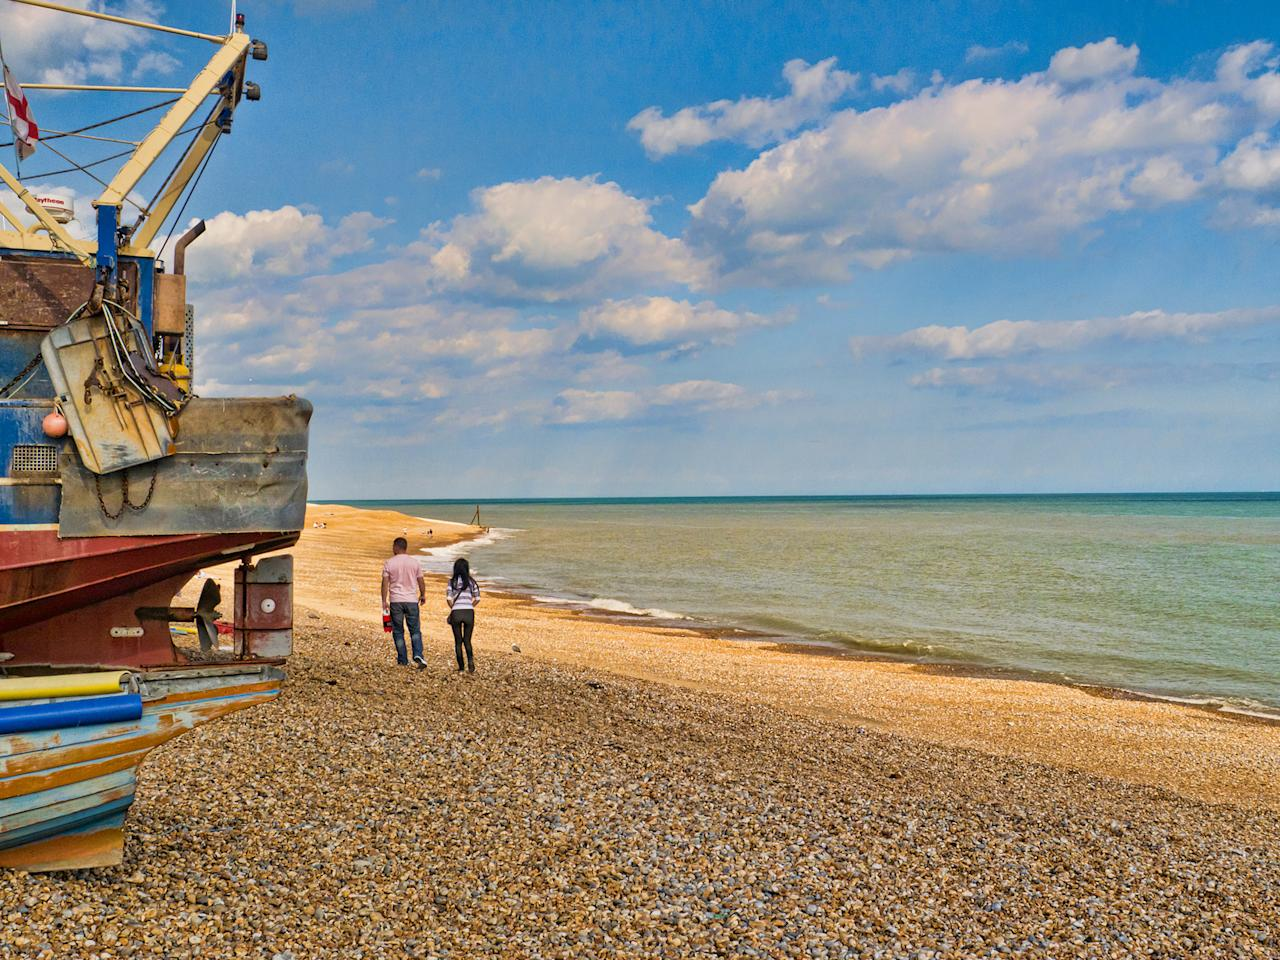 <p>Golden beaches and a healthy dose of history make for a good relaxation and educational experience at Hastings.<br /><i>[Photo: Flickr/Dennis Freeland]</i> </p>